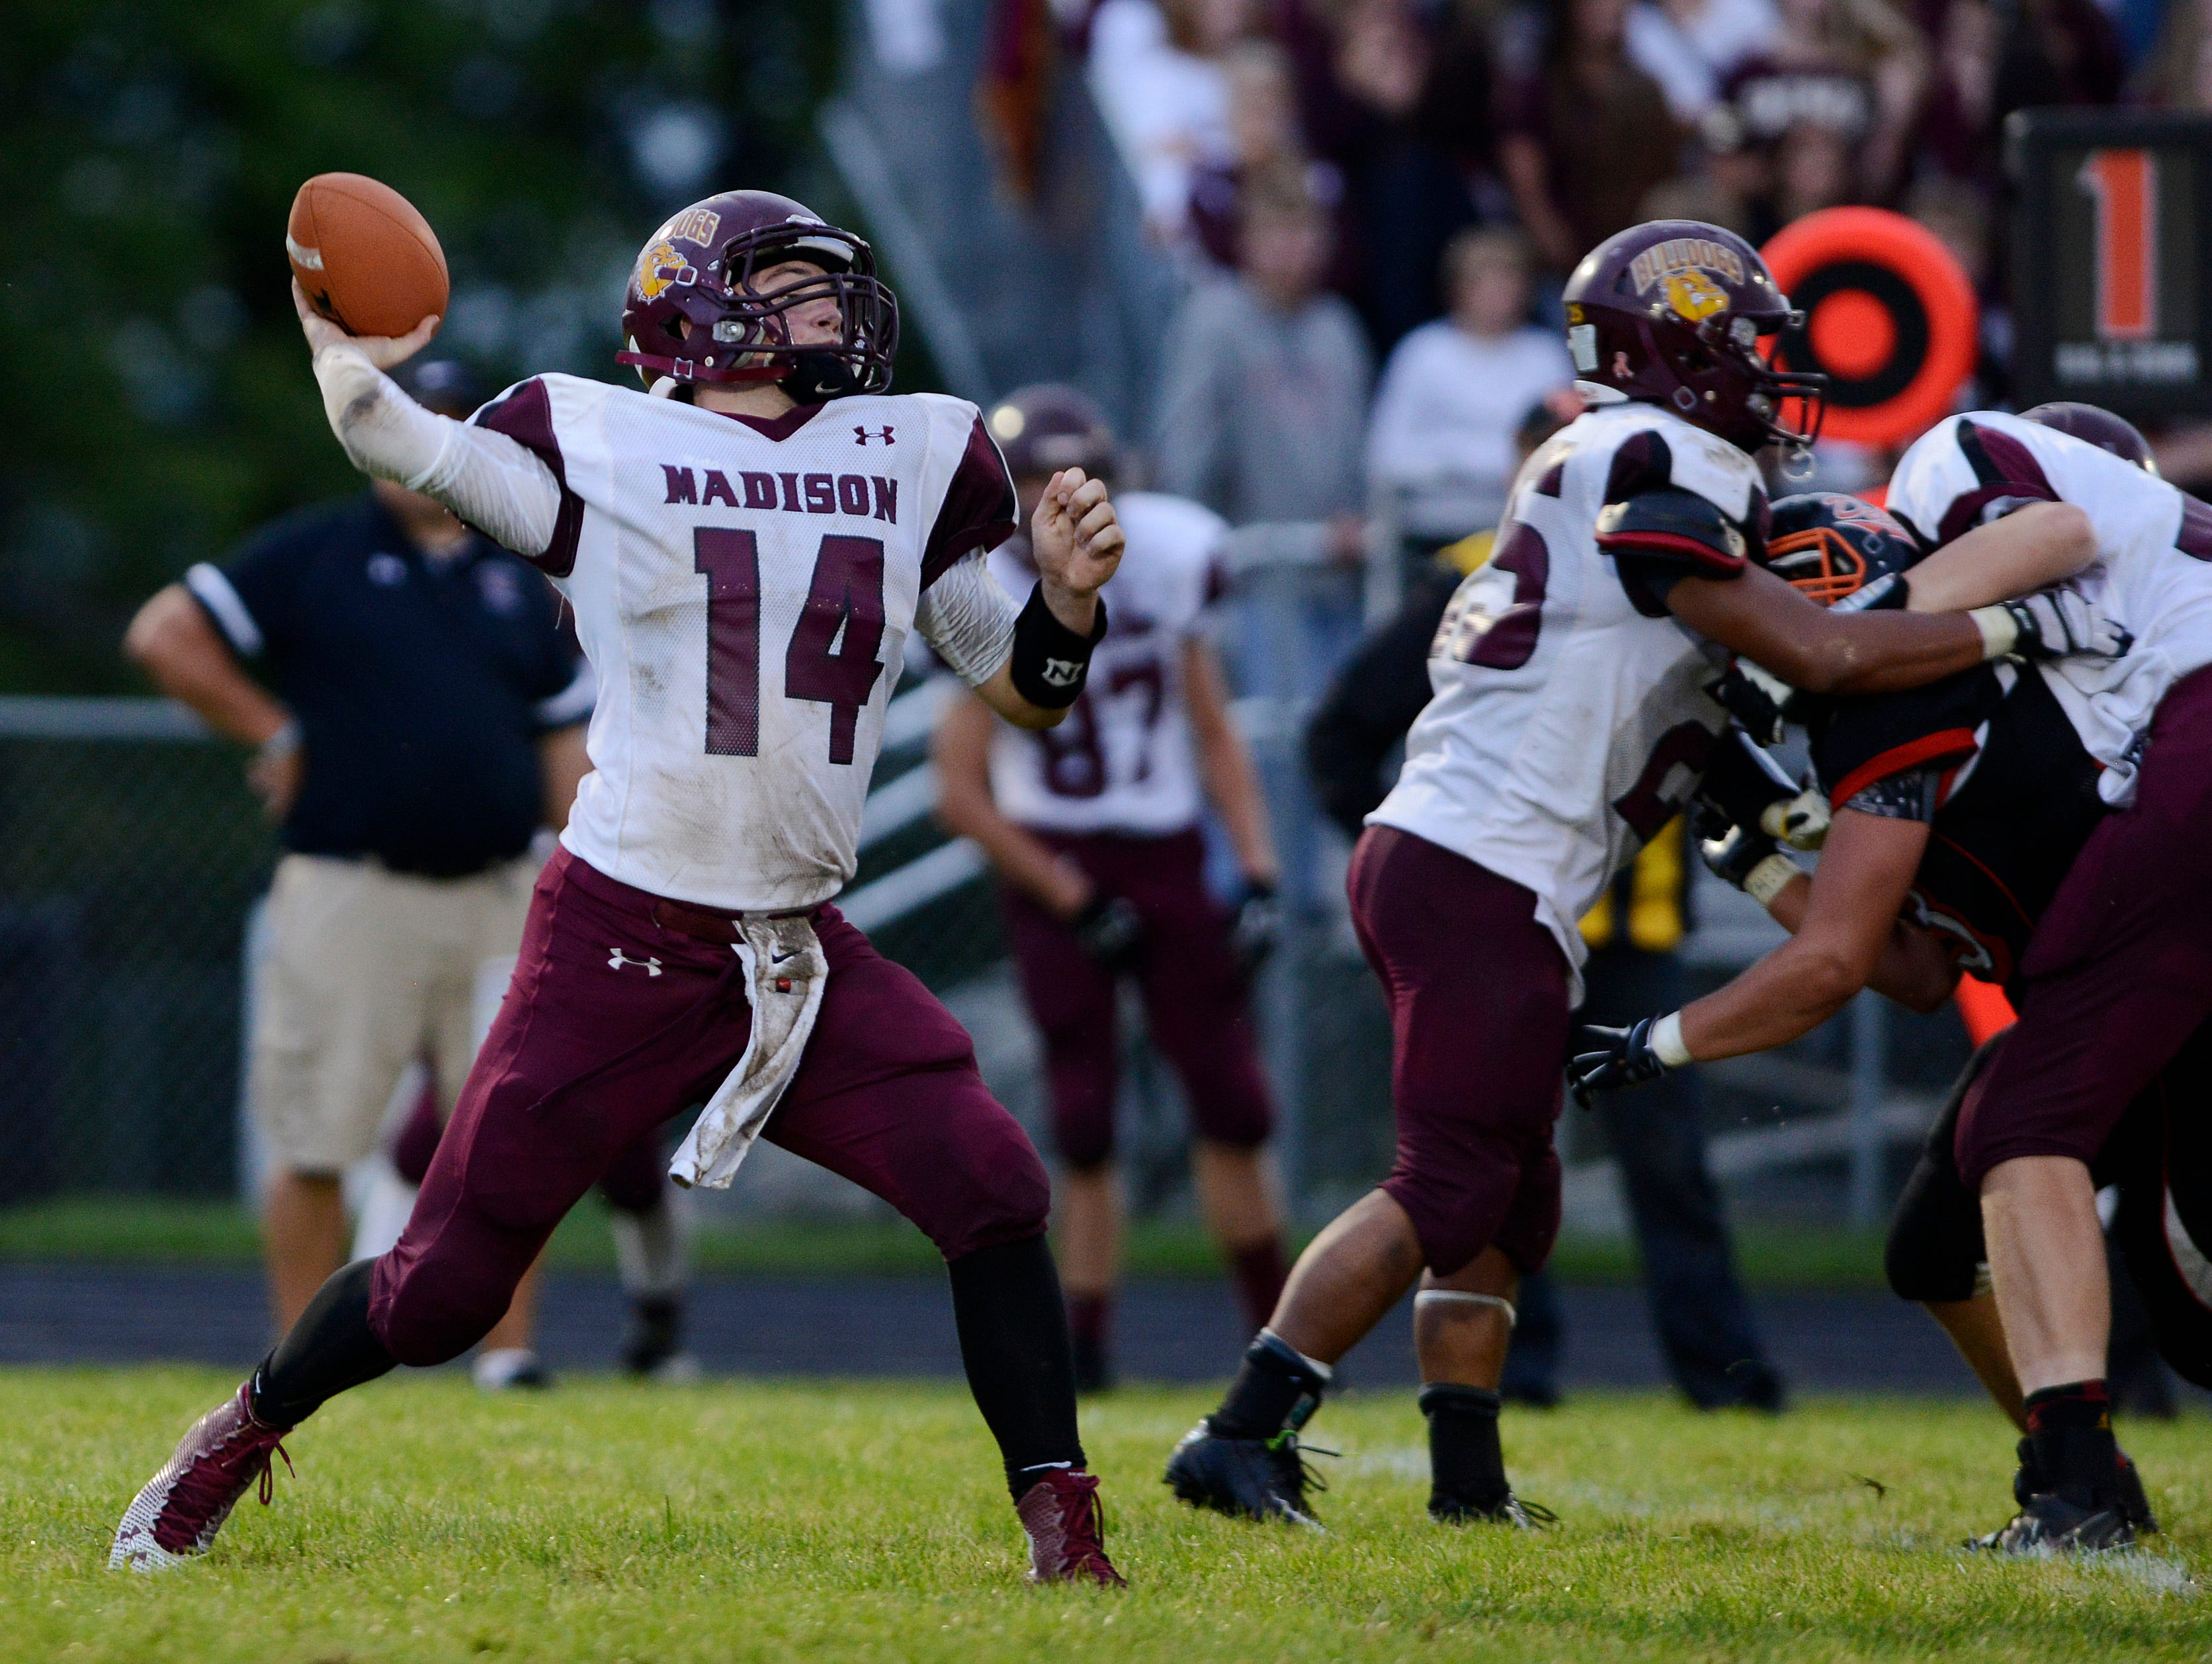 Madison senior quarterback Mitch Hansen throws a pass during Friday's game against Dell Rapids. Hansen was a dual threat for the Bulldogs, passing for 177 yards and rushing for 196 yards. Madison defeated Dell Rapids 36-33.